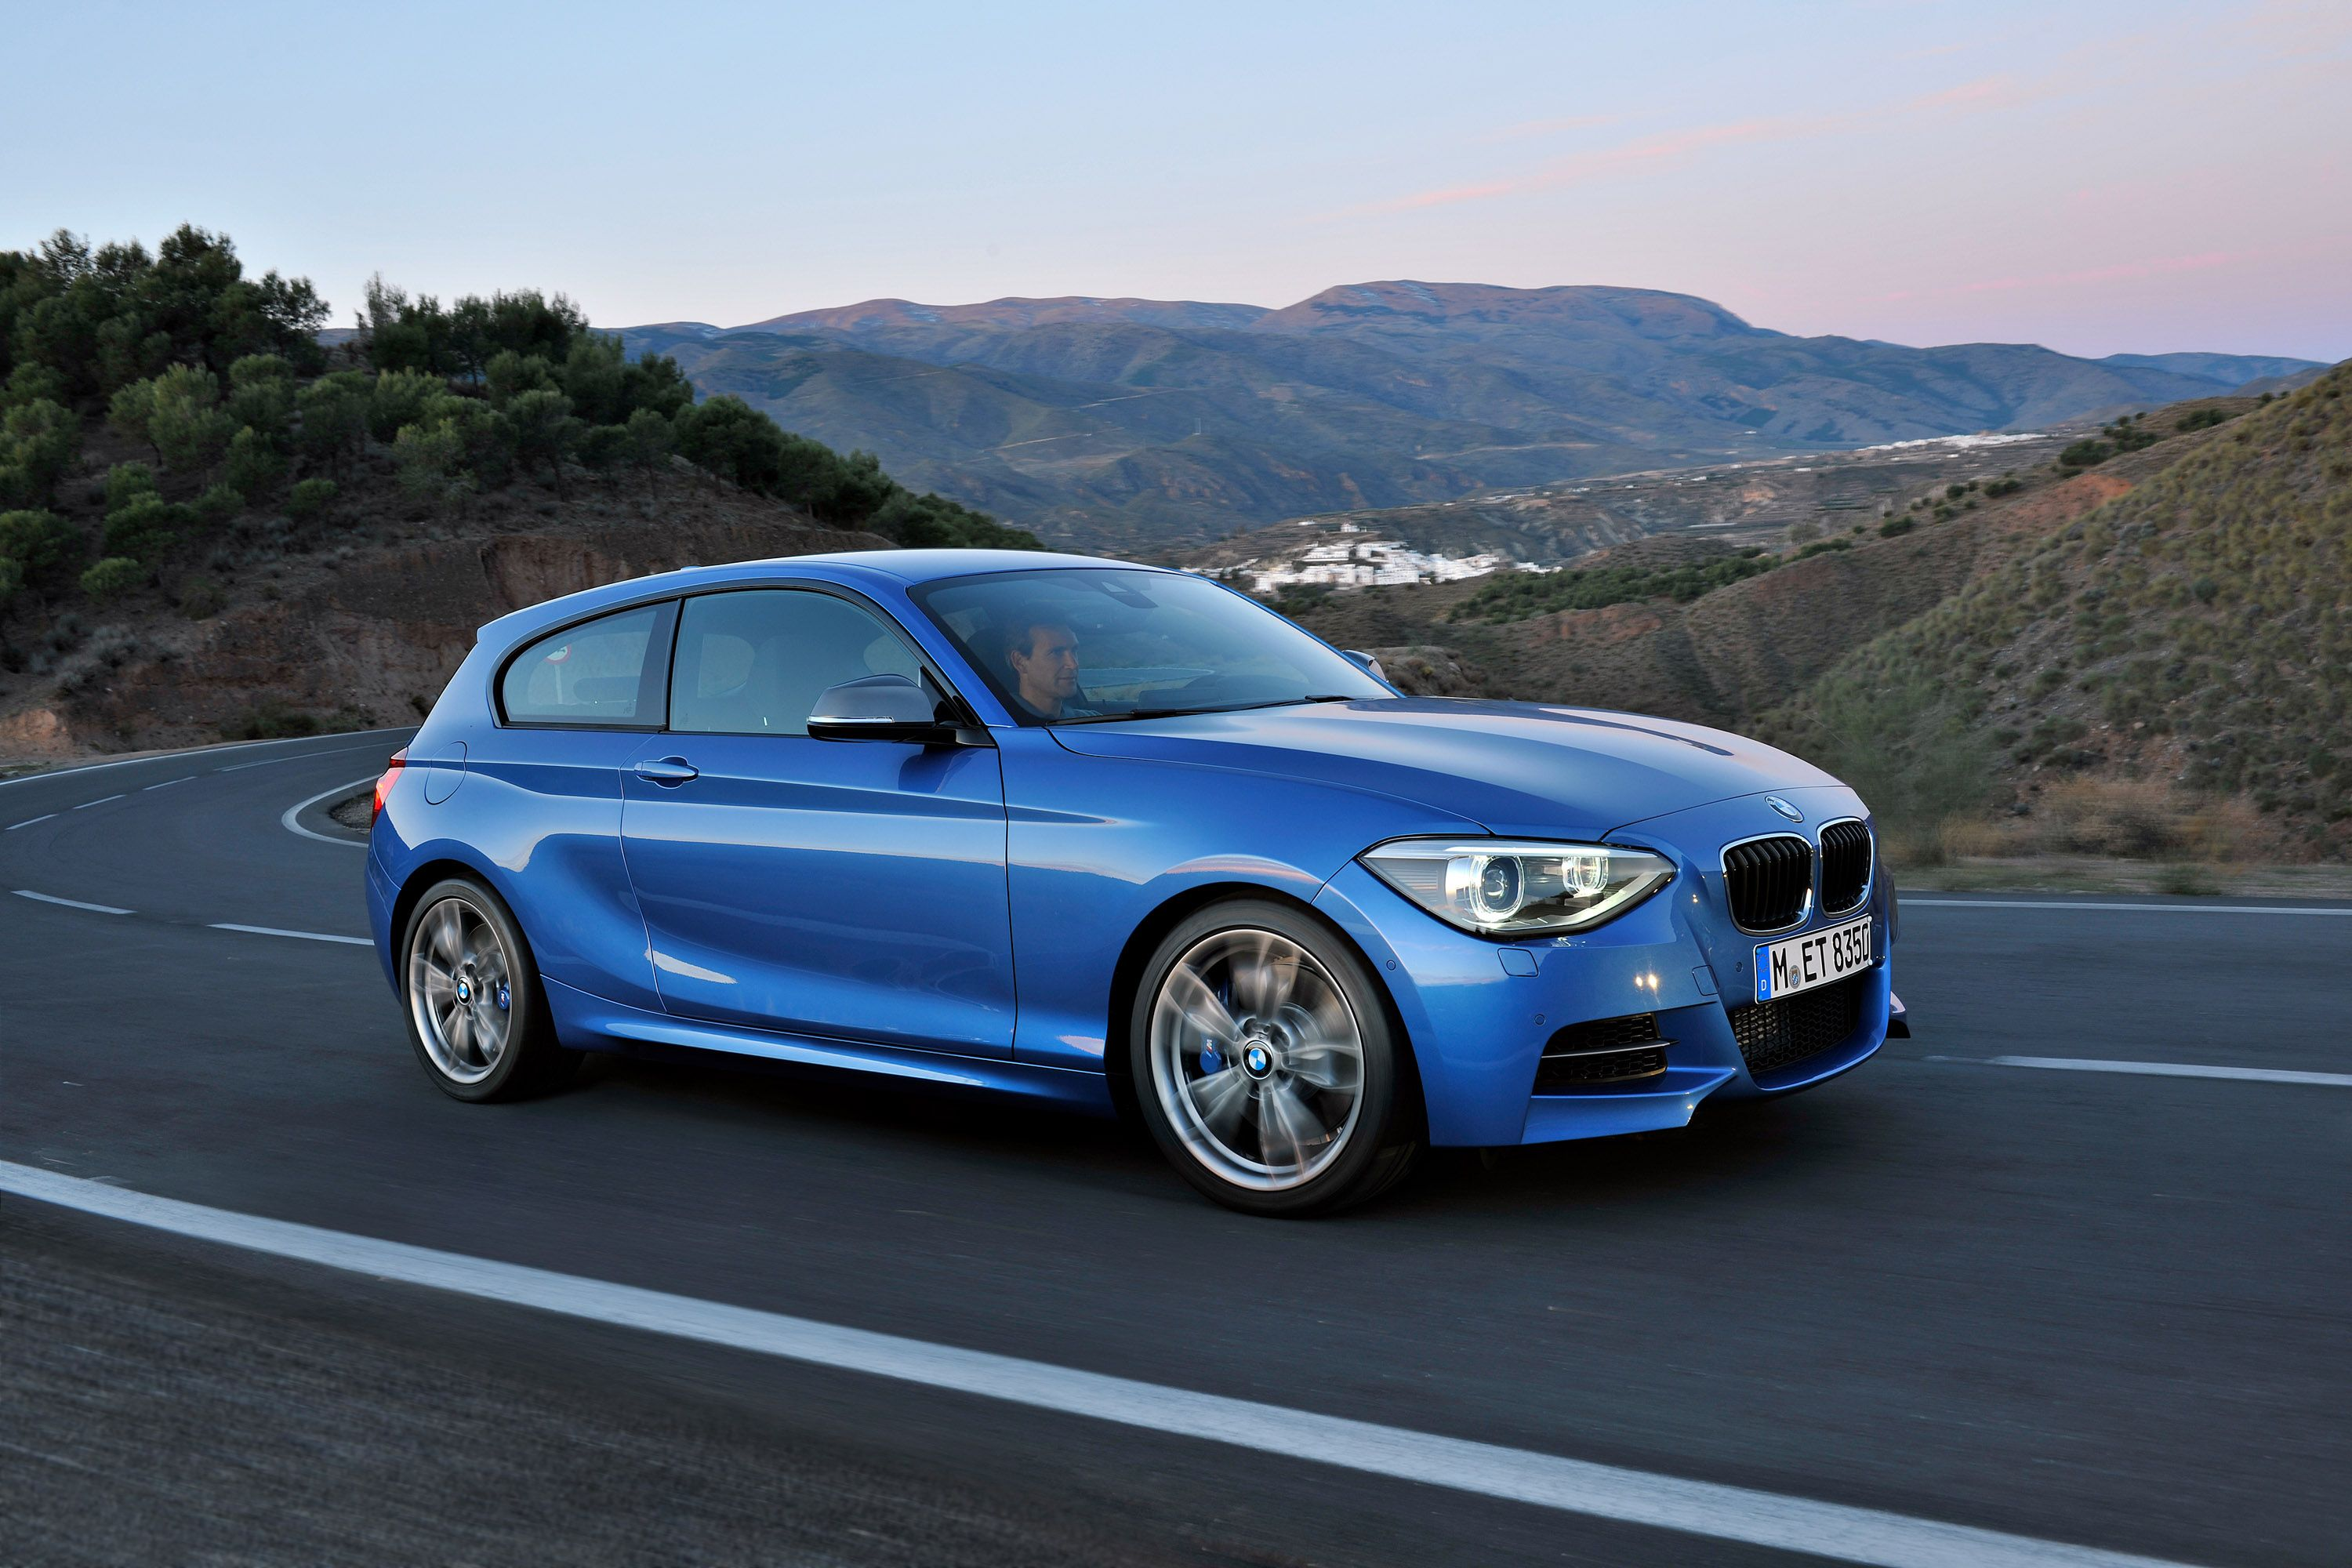 BMW Series BMW Series Top Car Magazine Sporty Cars - Bmw 1 series 2014